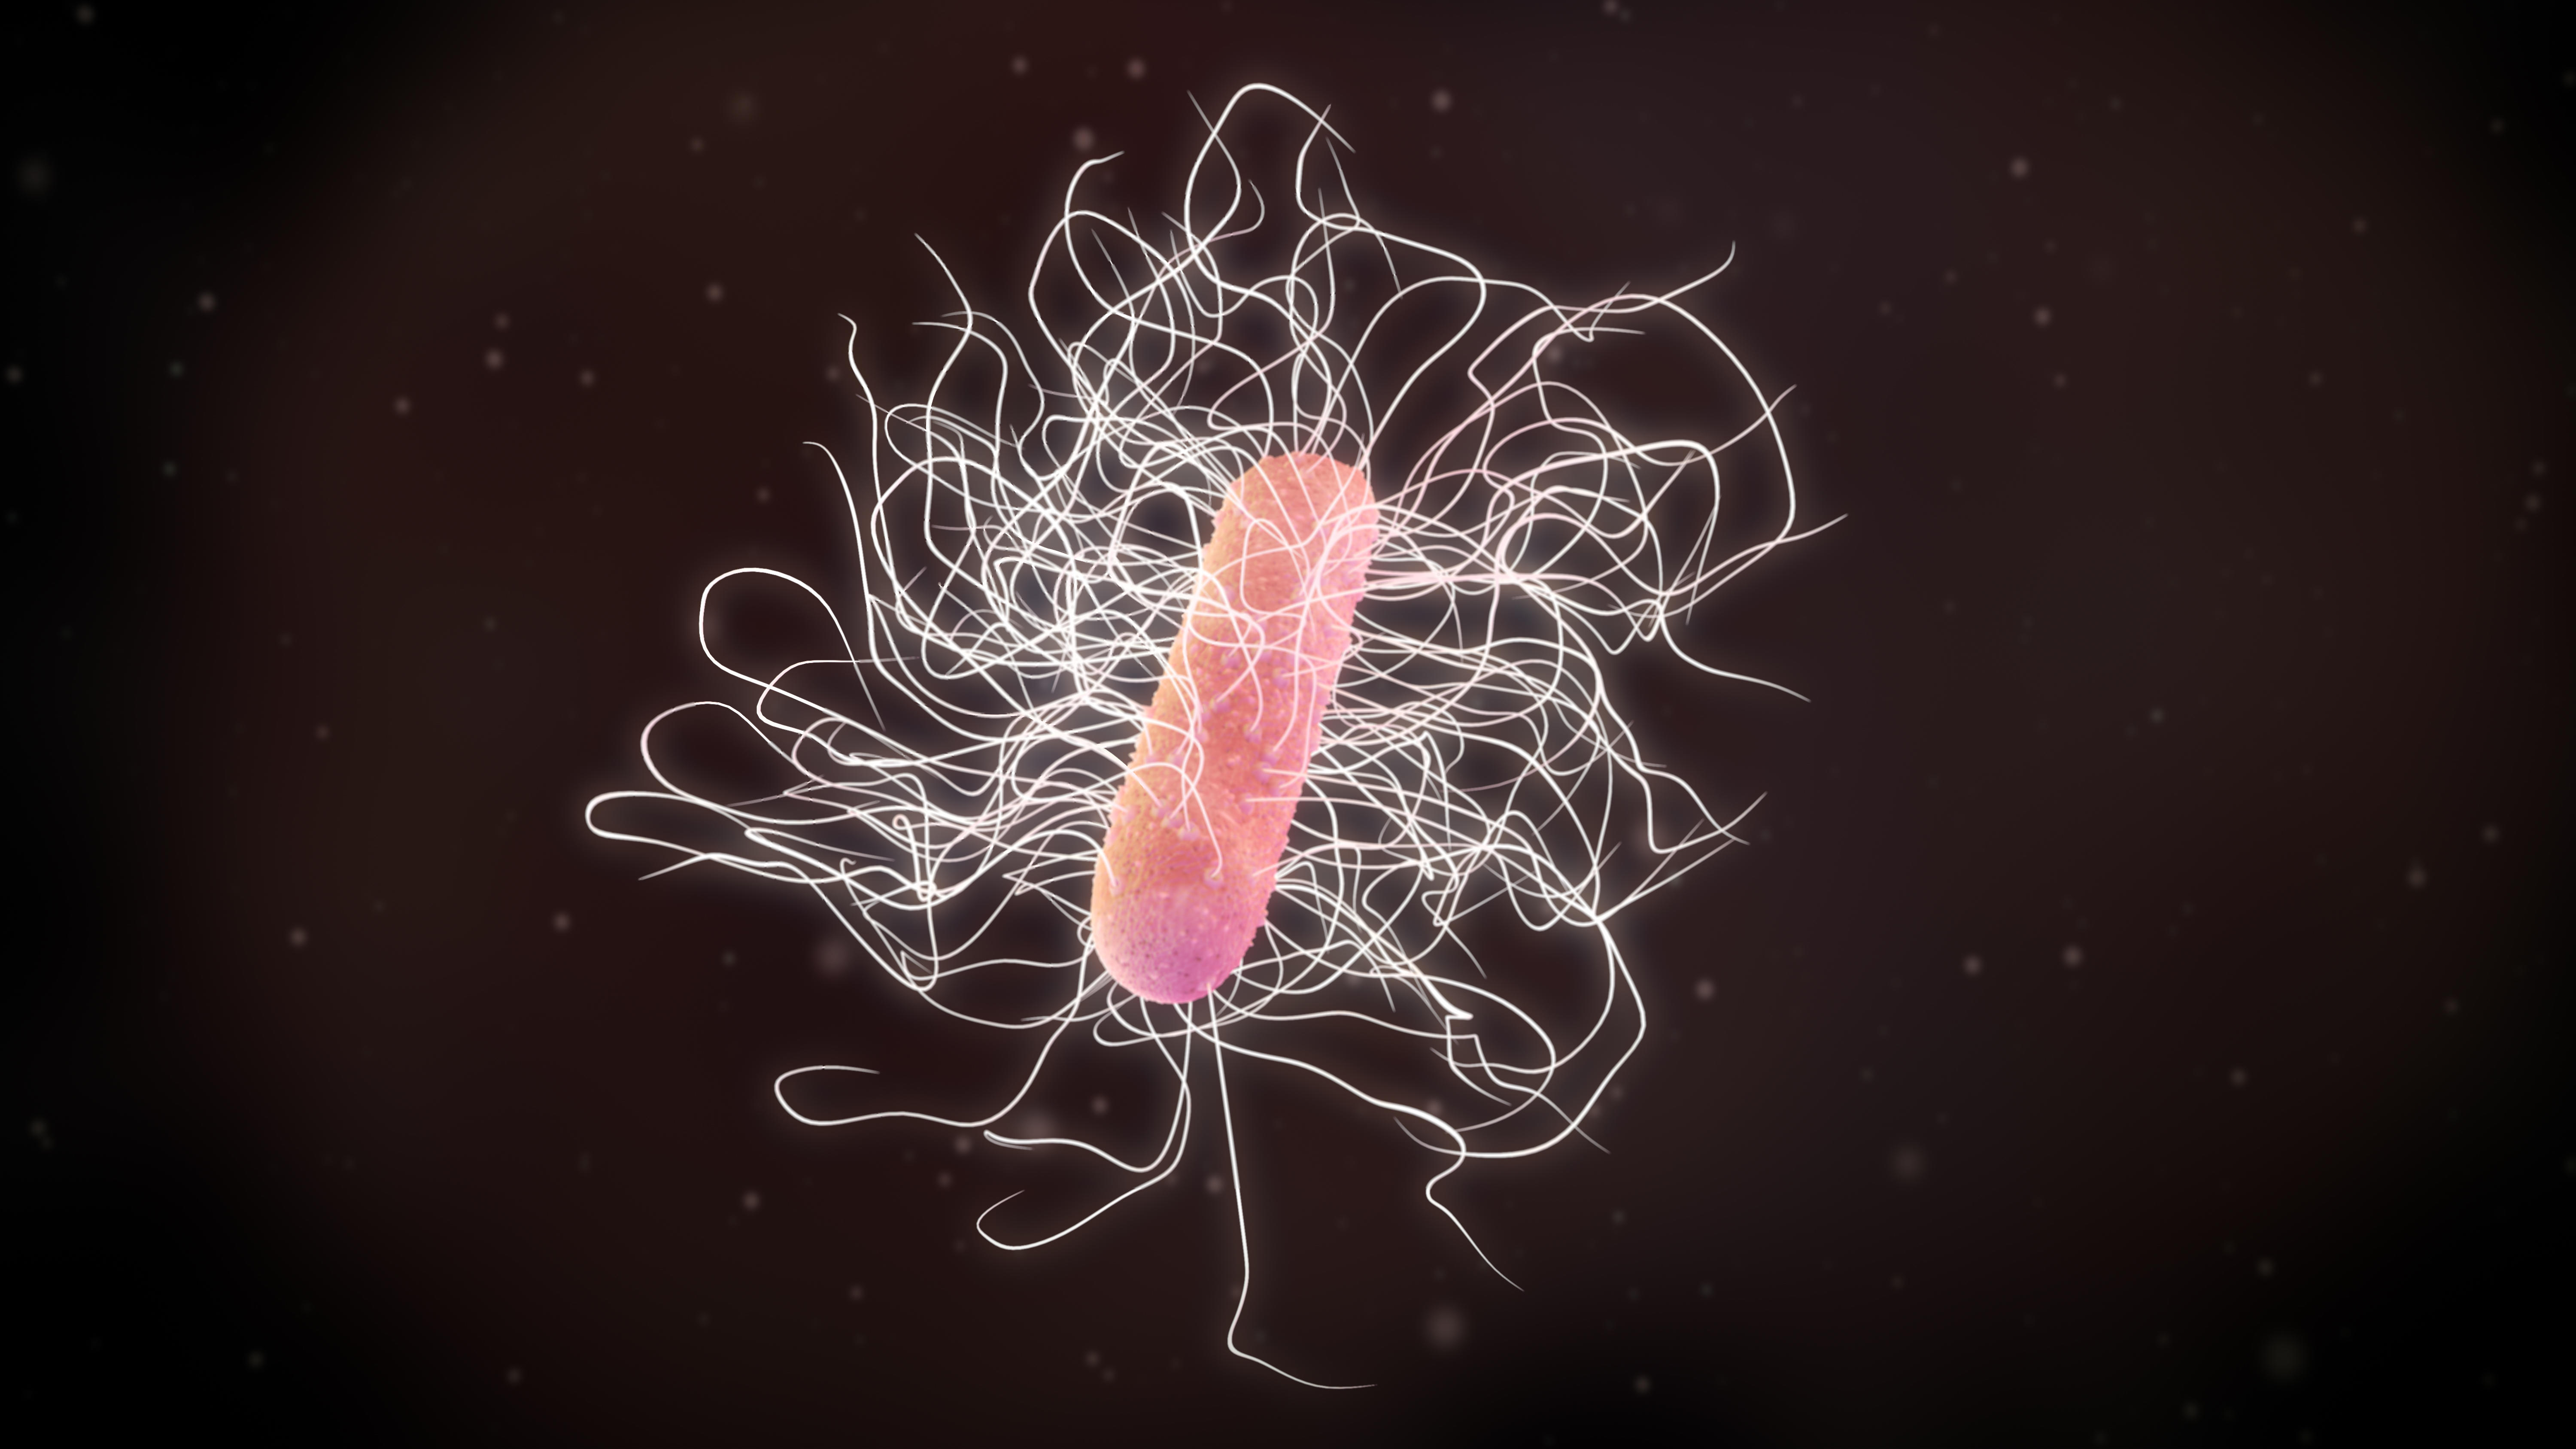 3D Illustration of a Clostridium Difficile bacteria